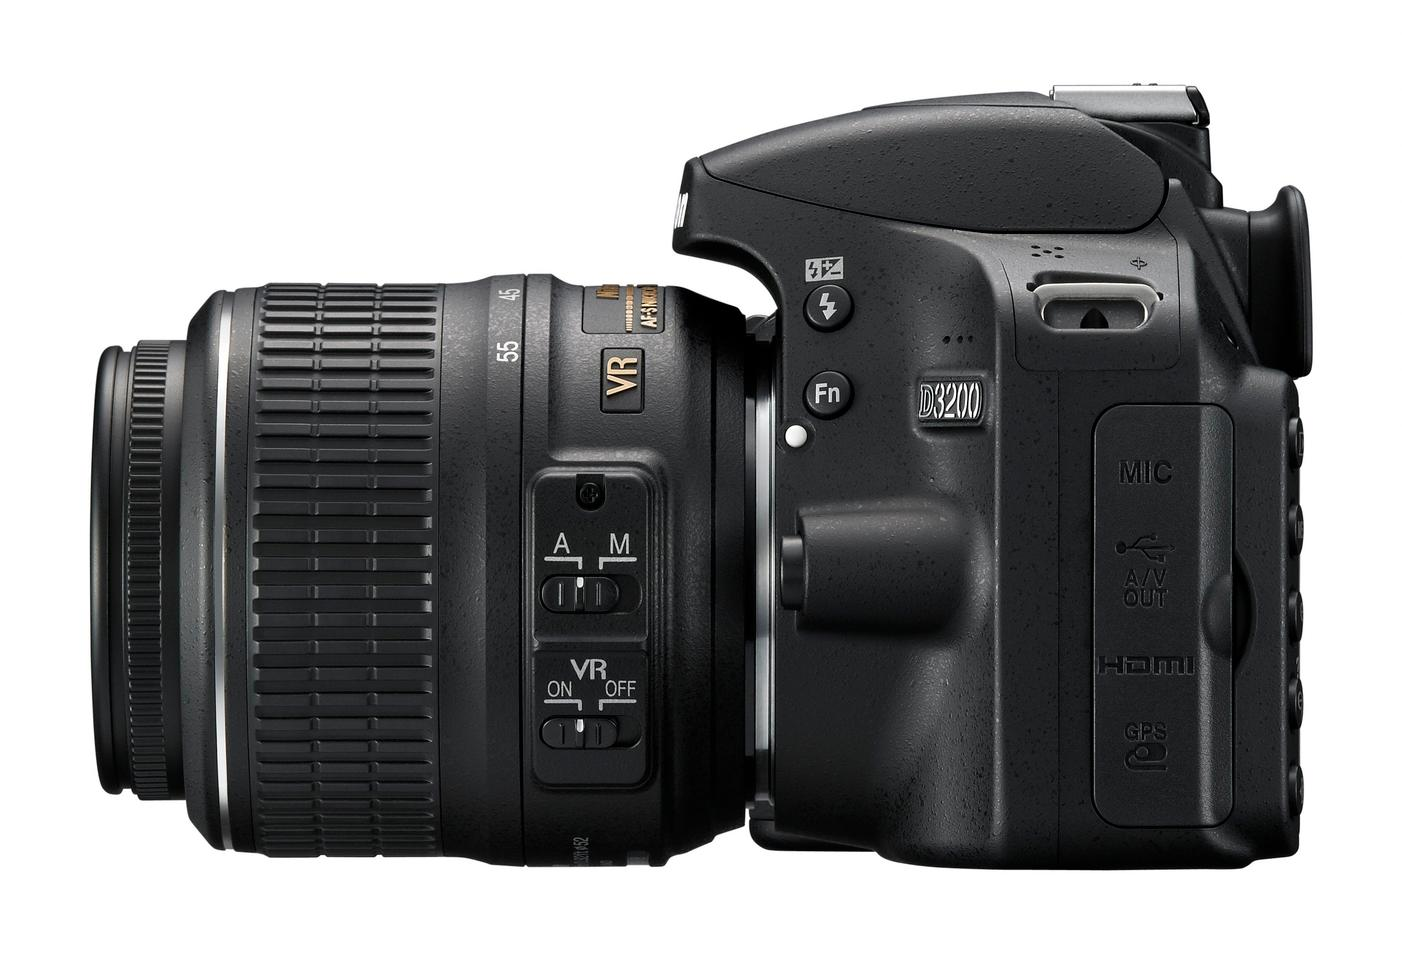 Nikon included a 3.5mm mic input with adjustable sensitivity to vastly improve the audio options of the D3200